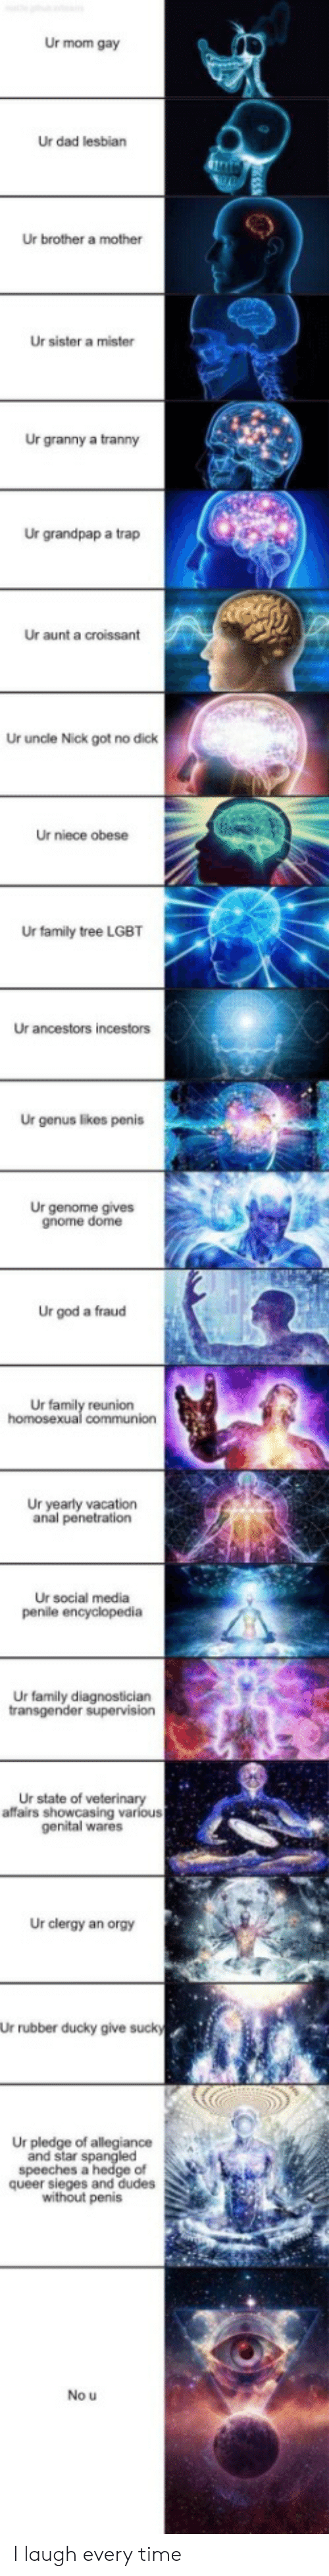 tranny: Ur mom gay  Ur dad lesbian  Ur brother a mother  Ur sister a mister  Ur granny a tranny  Ur grandpap a trap  Ur aunt a croissant  Ur uncle Nick got no dick  Ur niece obese  Ur family tree LGBT  Ur ancestors incestors  Ur genus likes penis  Ur genome gives  gnome dome  Ur god a fraud  Ur family reunion  homosexual communion  Ur yearly vacation  anal penetration  Ur social media  penile encyclopedia  Ur family diagnostician  transgender supervision  Ur state of veterinary  affairs showcasing various  genital wares  Ur clergy an orgy  Ur rubber ducky give sucky  Ur pledge of allegiance  and star spangled  speeches a hedge of  queer sieges and dudes  without penis  No u I laugh every time